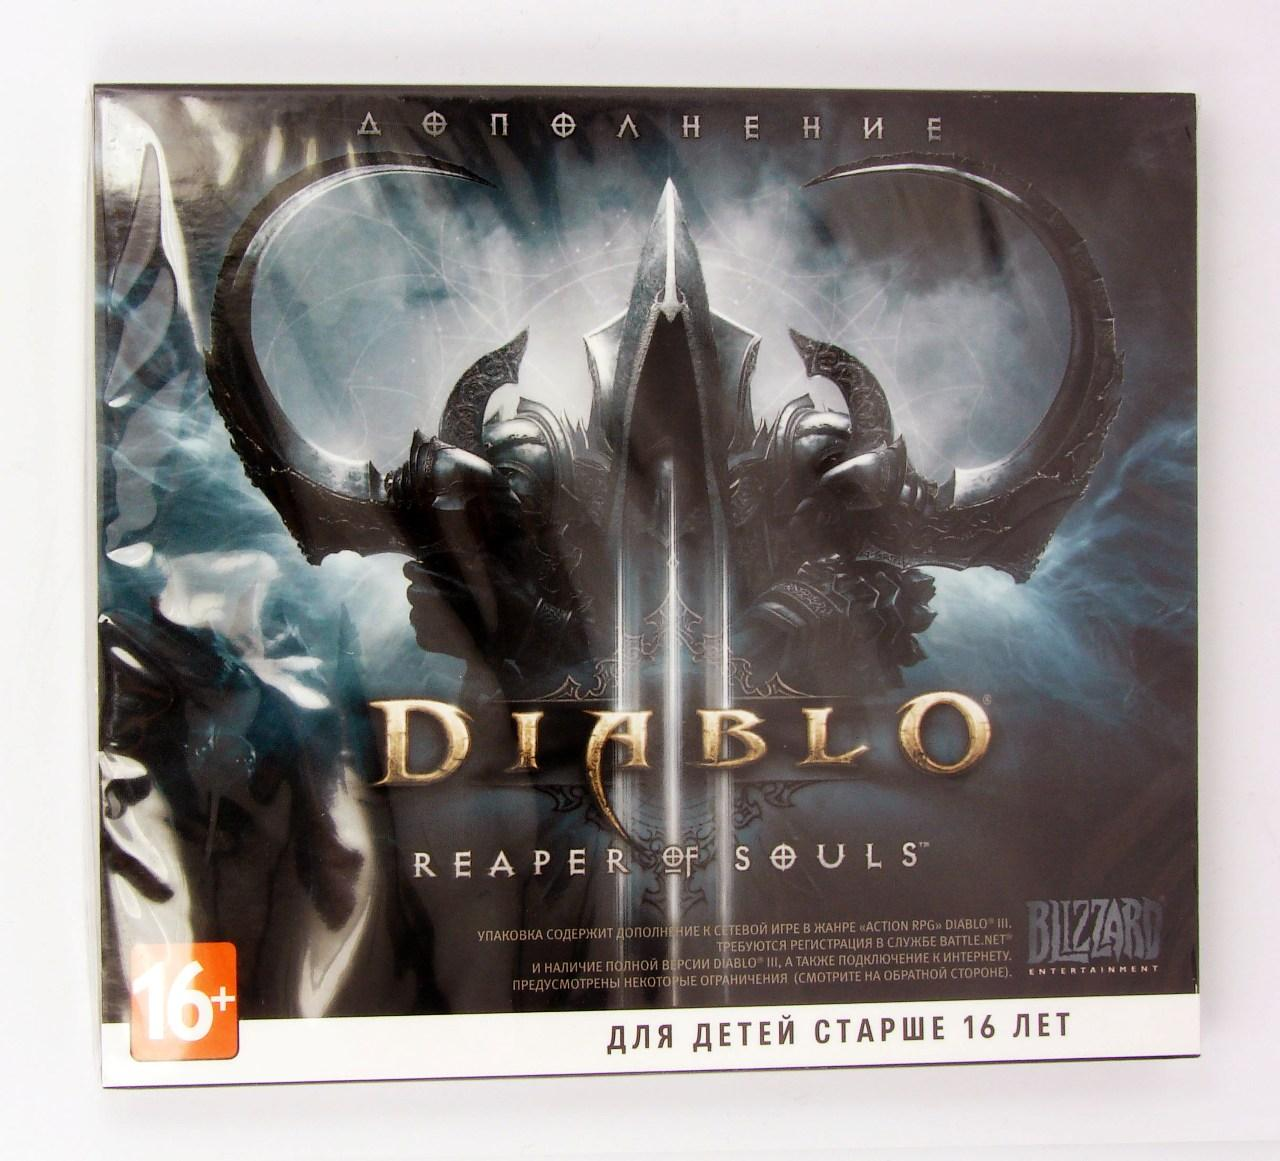 Diablo 3: Reaper of Souls (RU / EU) to purchase an activation key